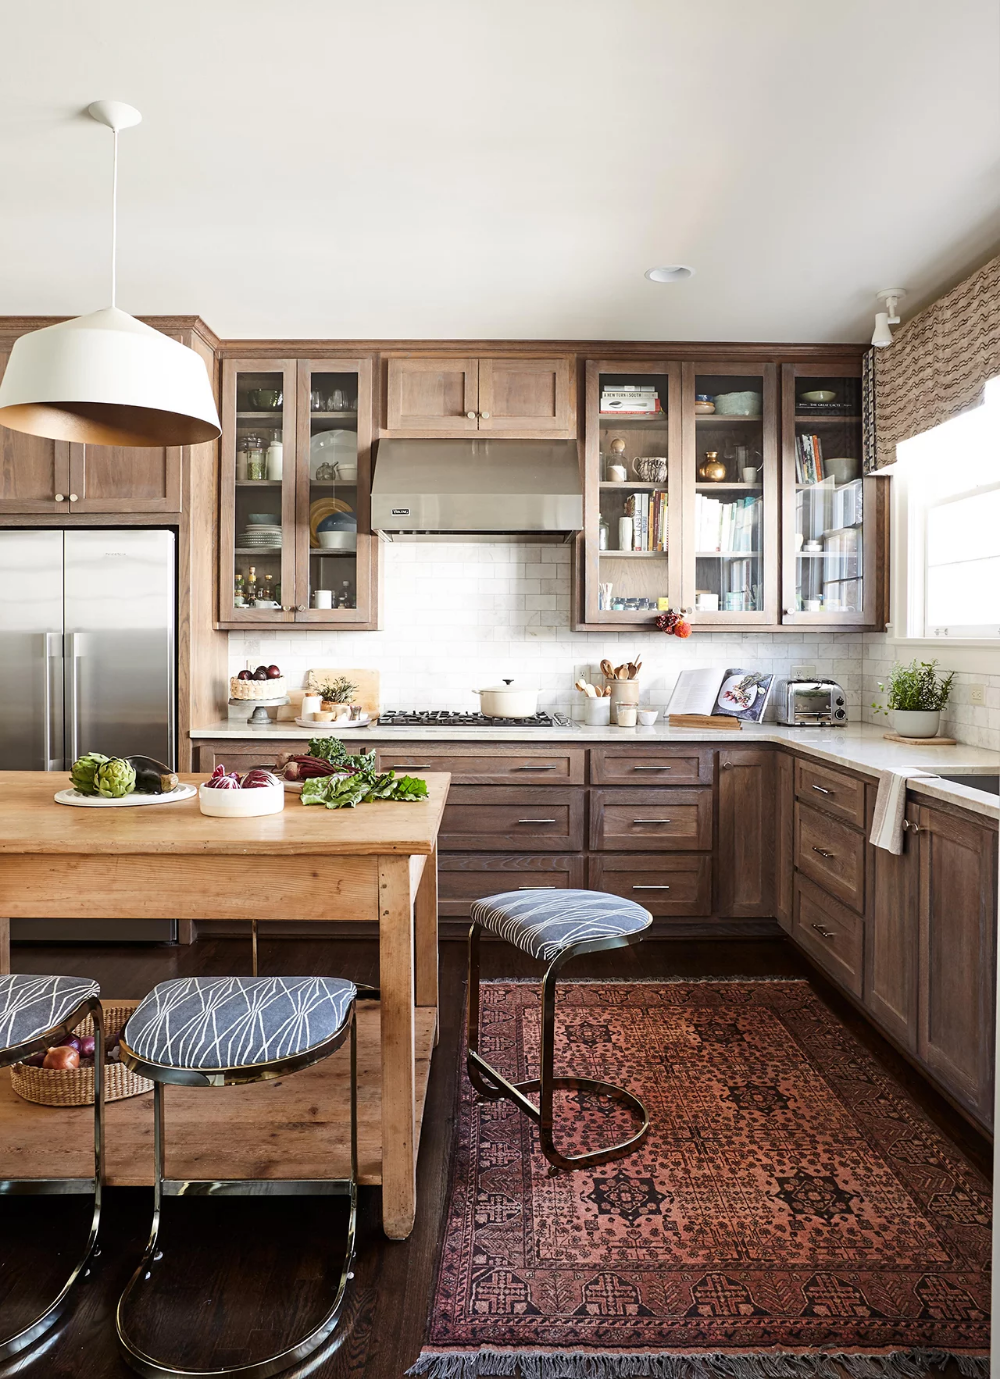 22 Kitchen Cabinetry Trends You Ll Love For Years To Come In 2020 Types Of Kitchen Cabinets Contemporary Kitchen Cabinets Clean Kitchen Cabinets